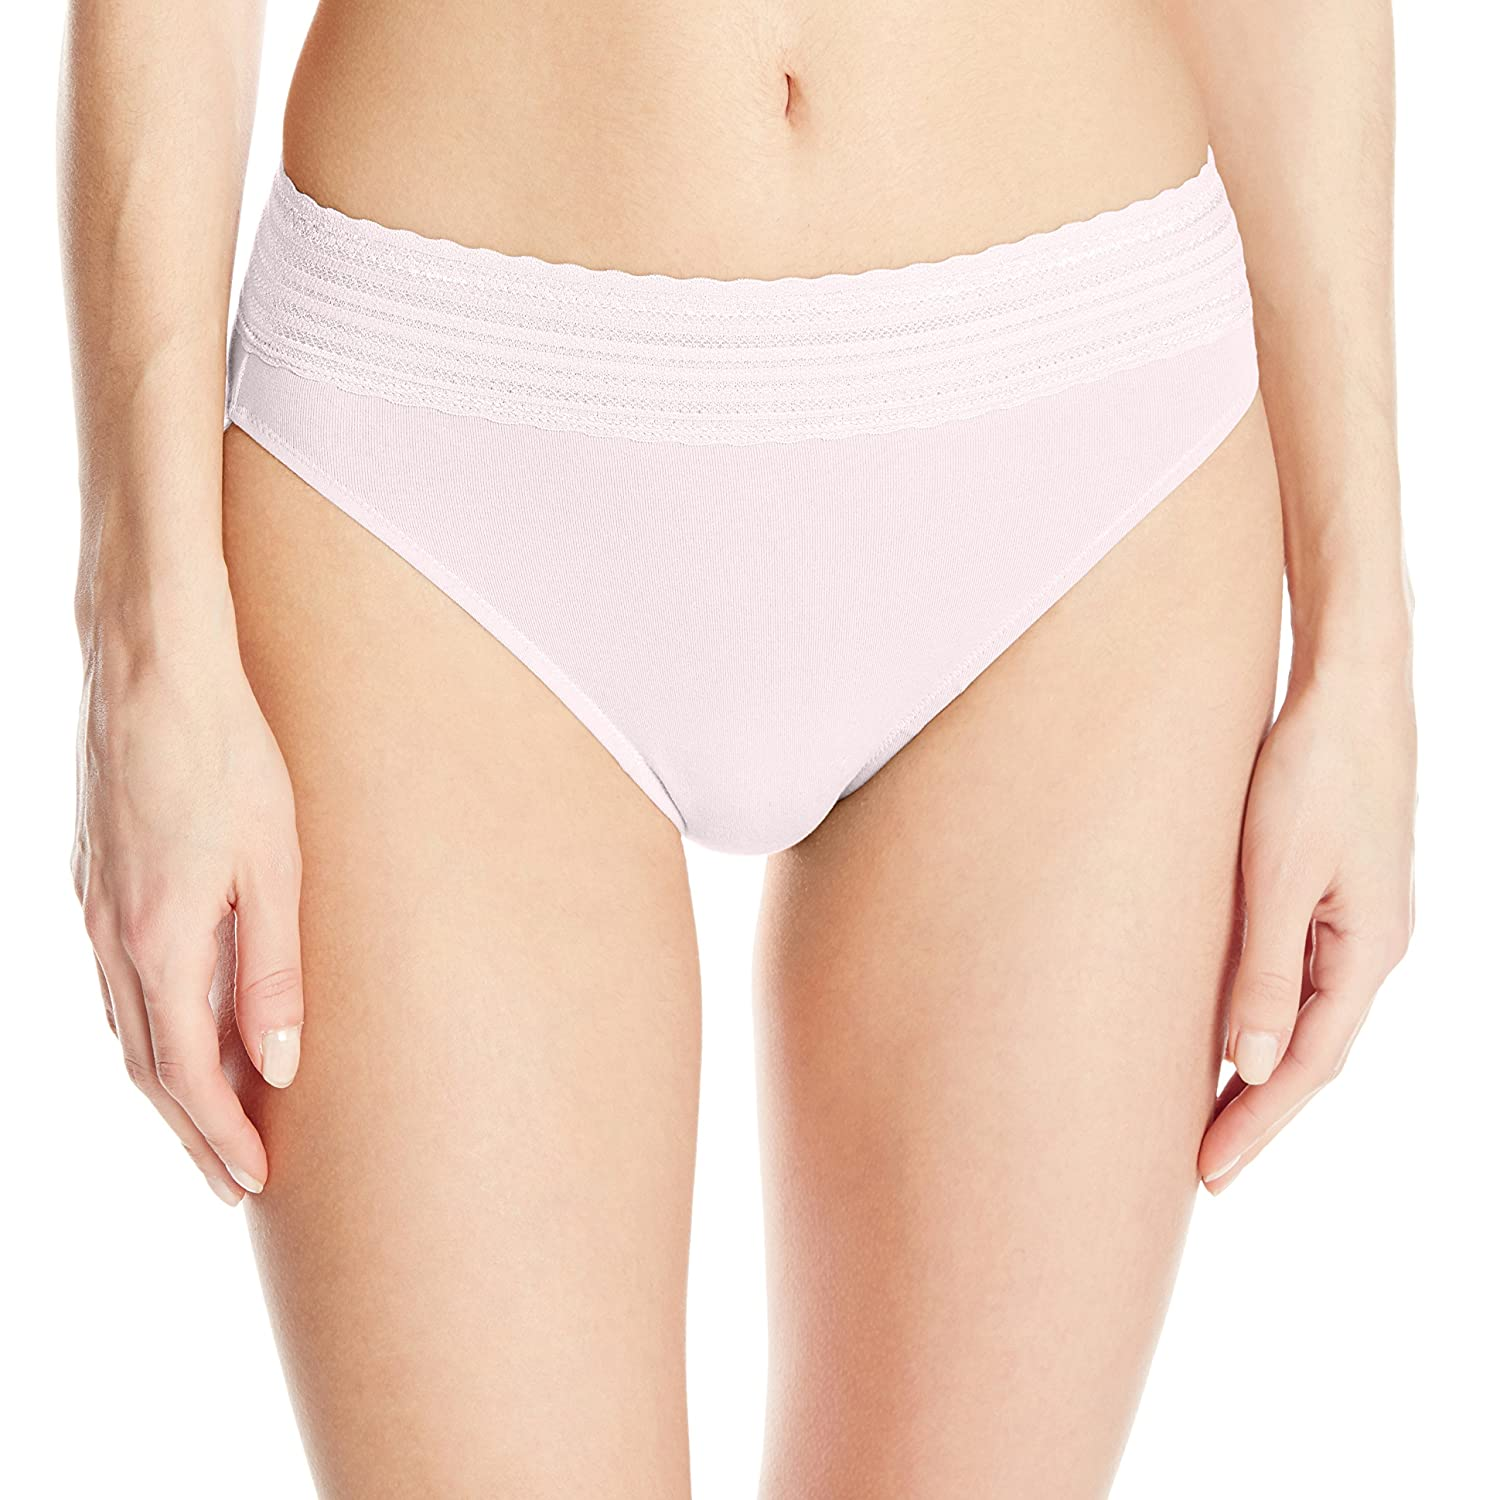 615234a99a9 Warner's No Pinching No Problem Cotton Lace Hi-Cut Panty at Amazon Women's  Clothing store: